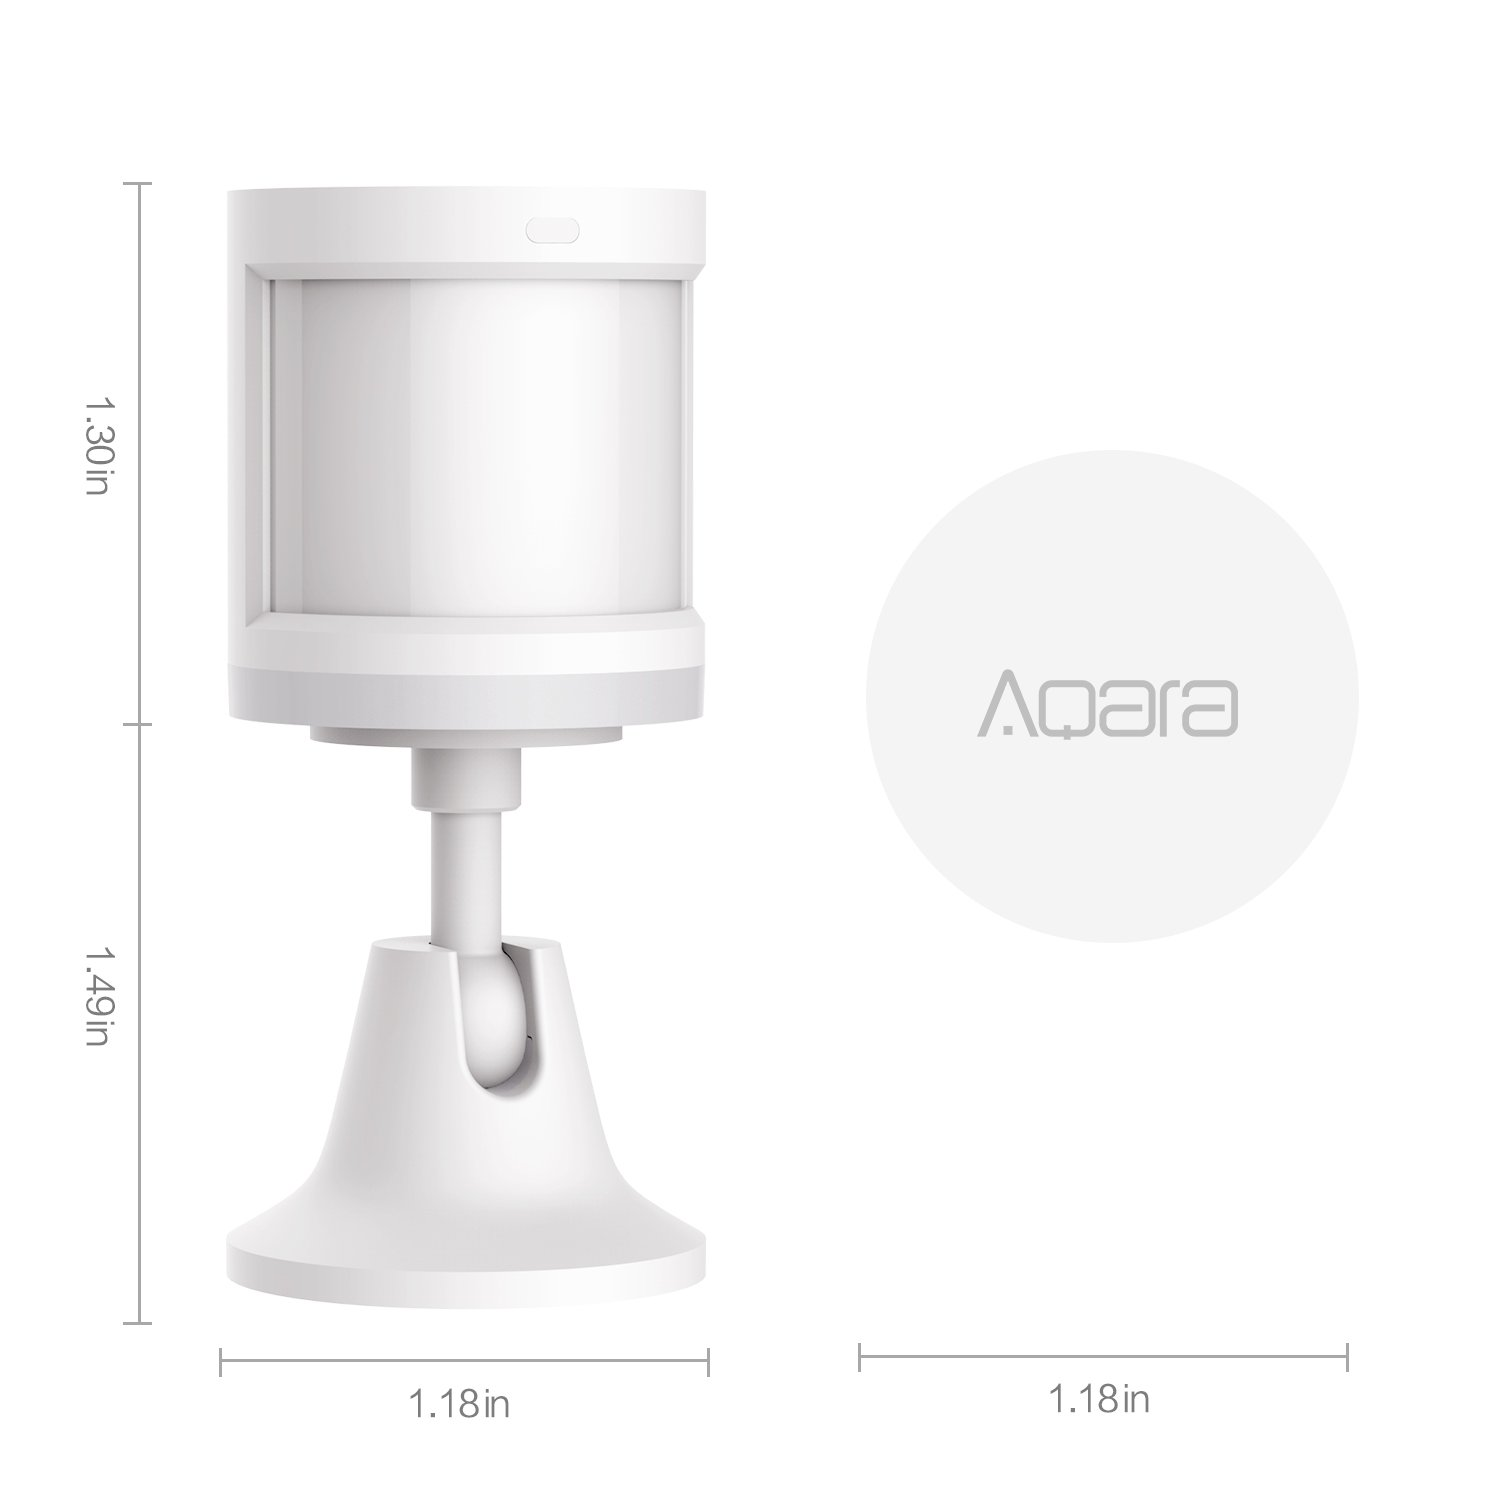 Amazon.com: Aqara 11LM Rtcgq Motion Sensor, 1 Pack, White: Home Improvement